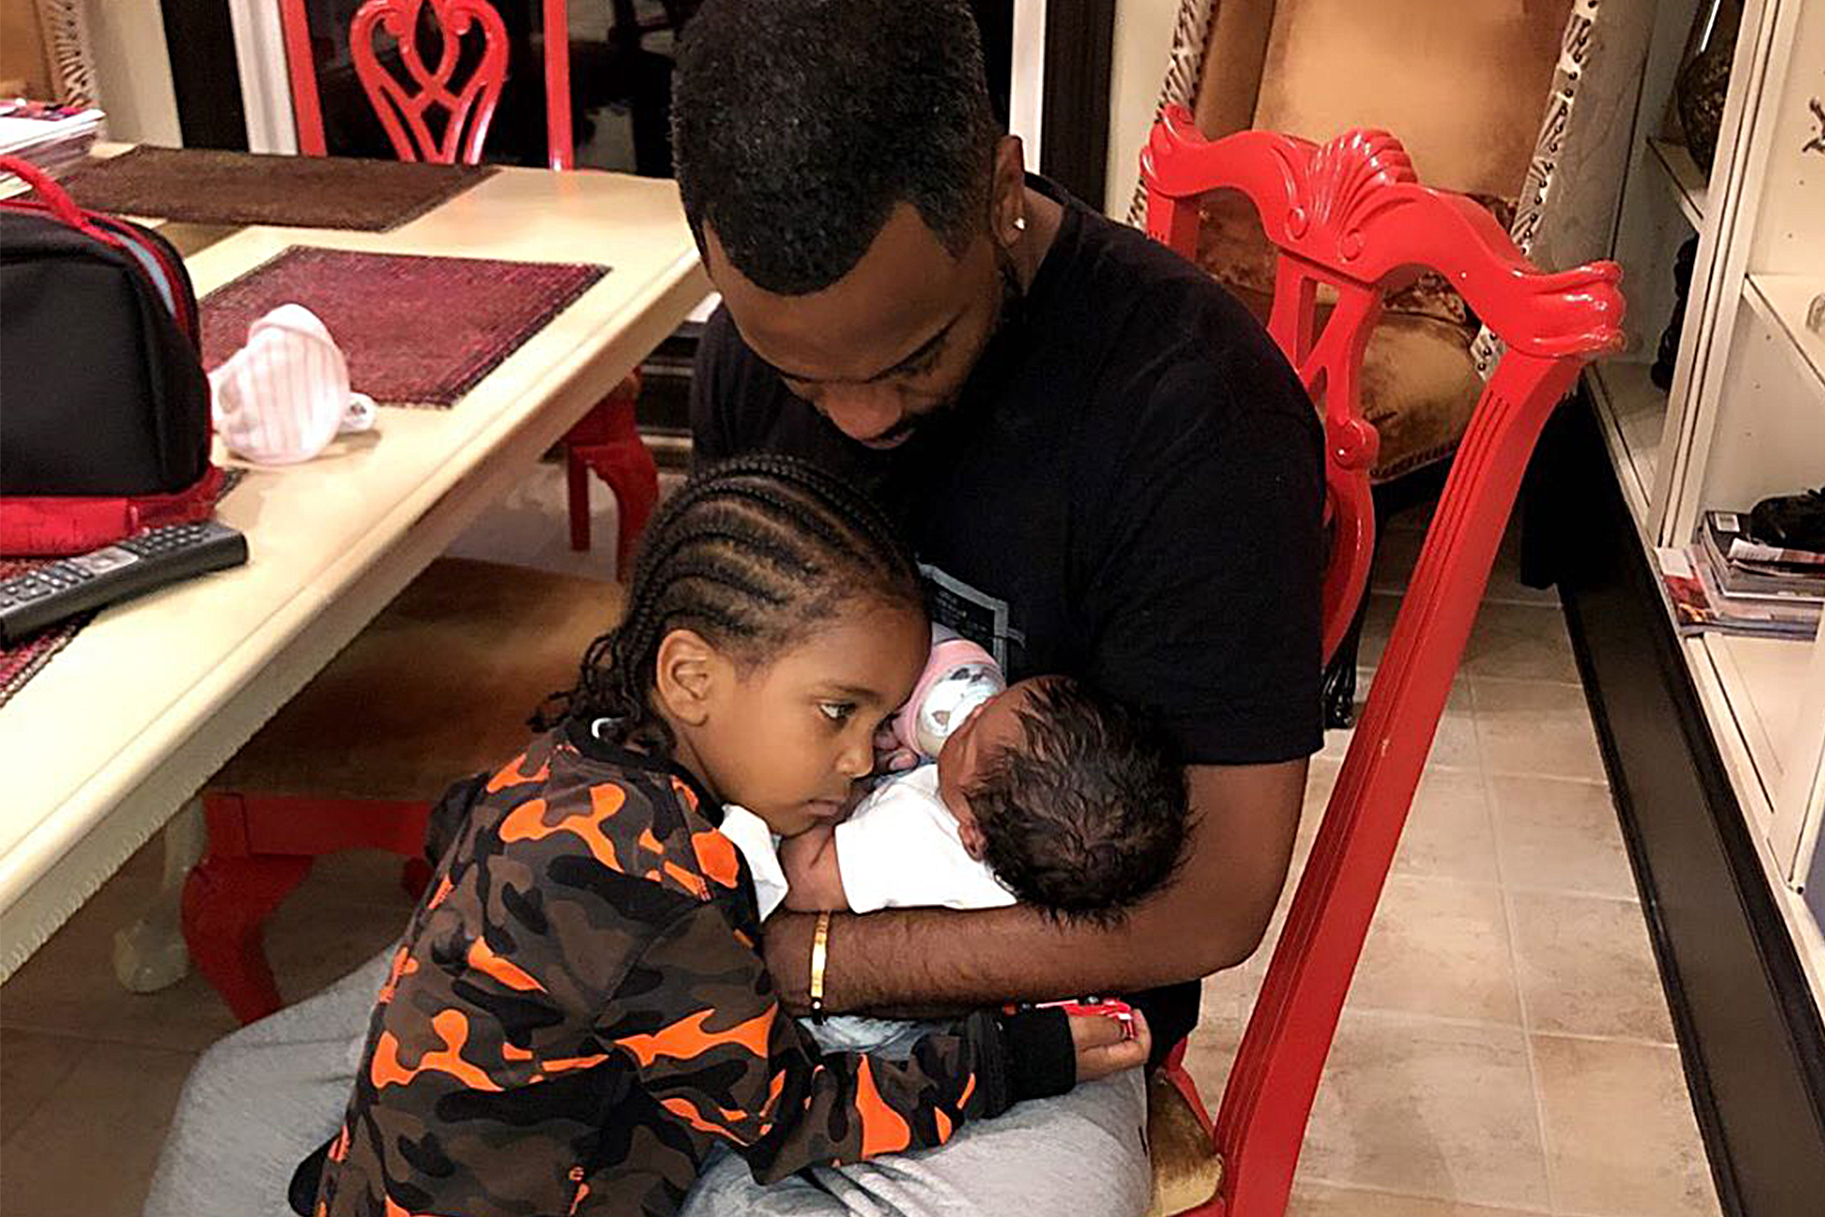 Kandi Burruss Shares The Most Adorable Photo With Ace Wells Tucker And His Sister, Blaze Tucker